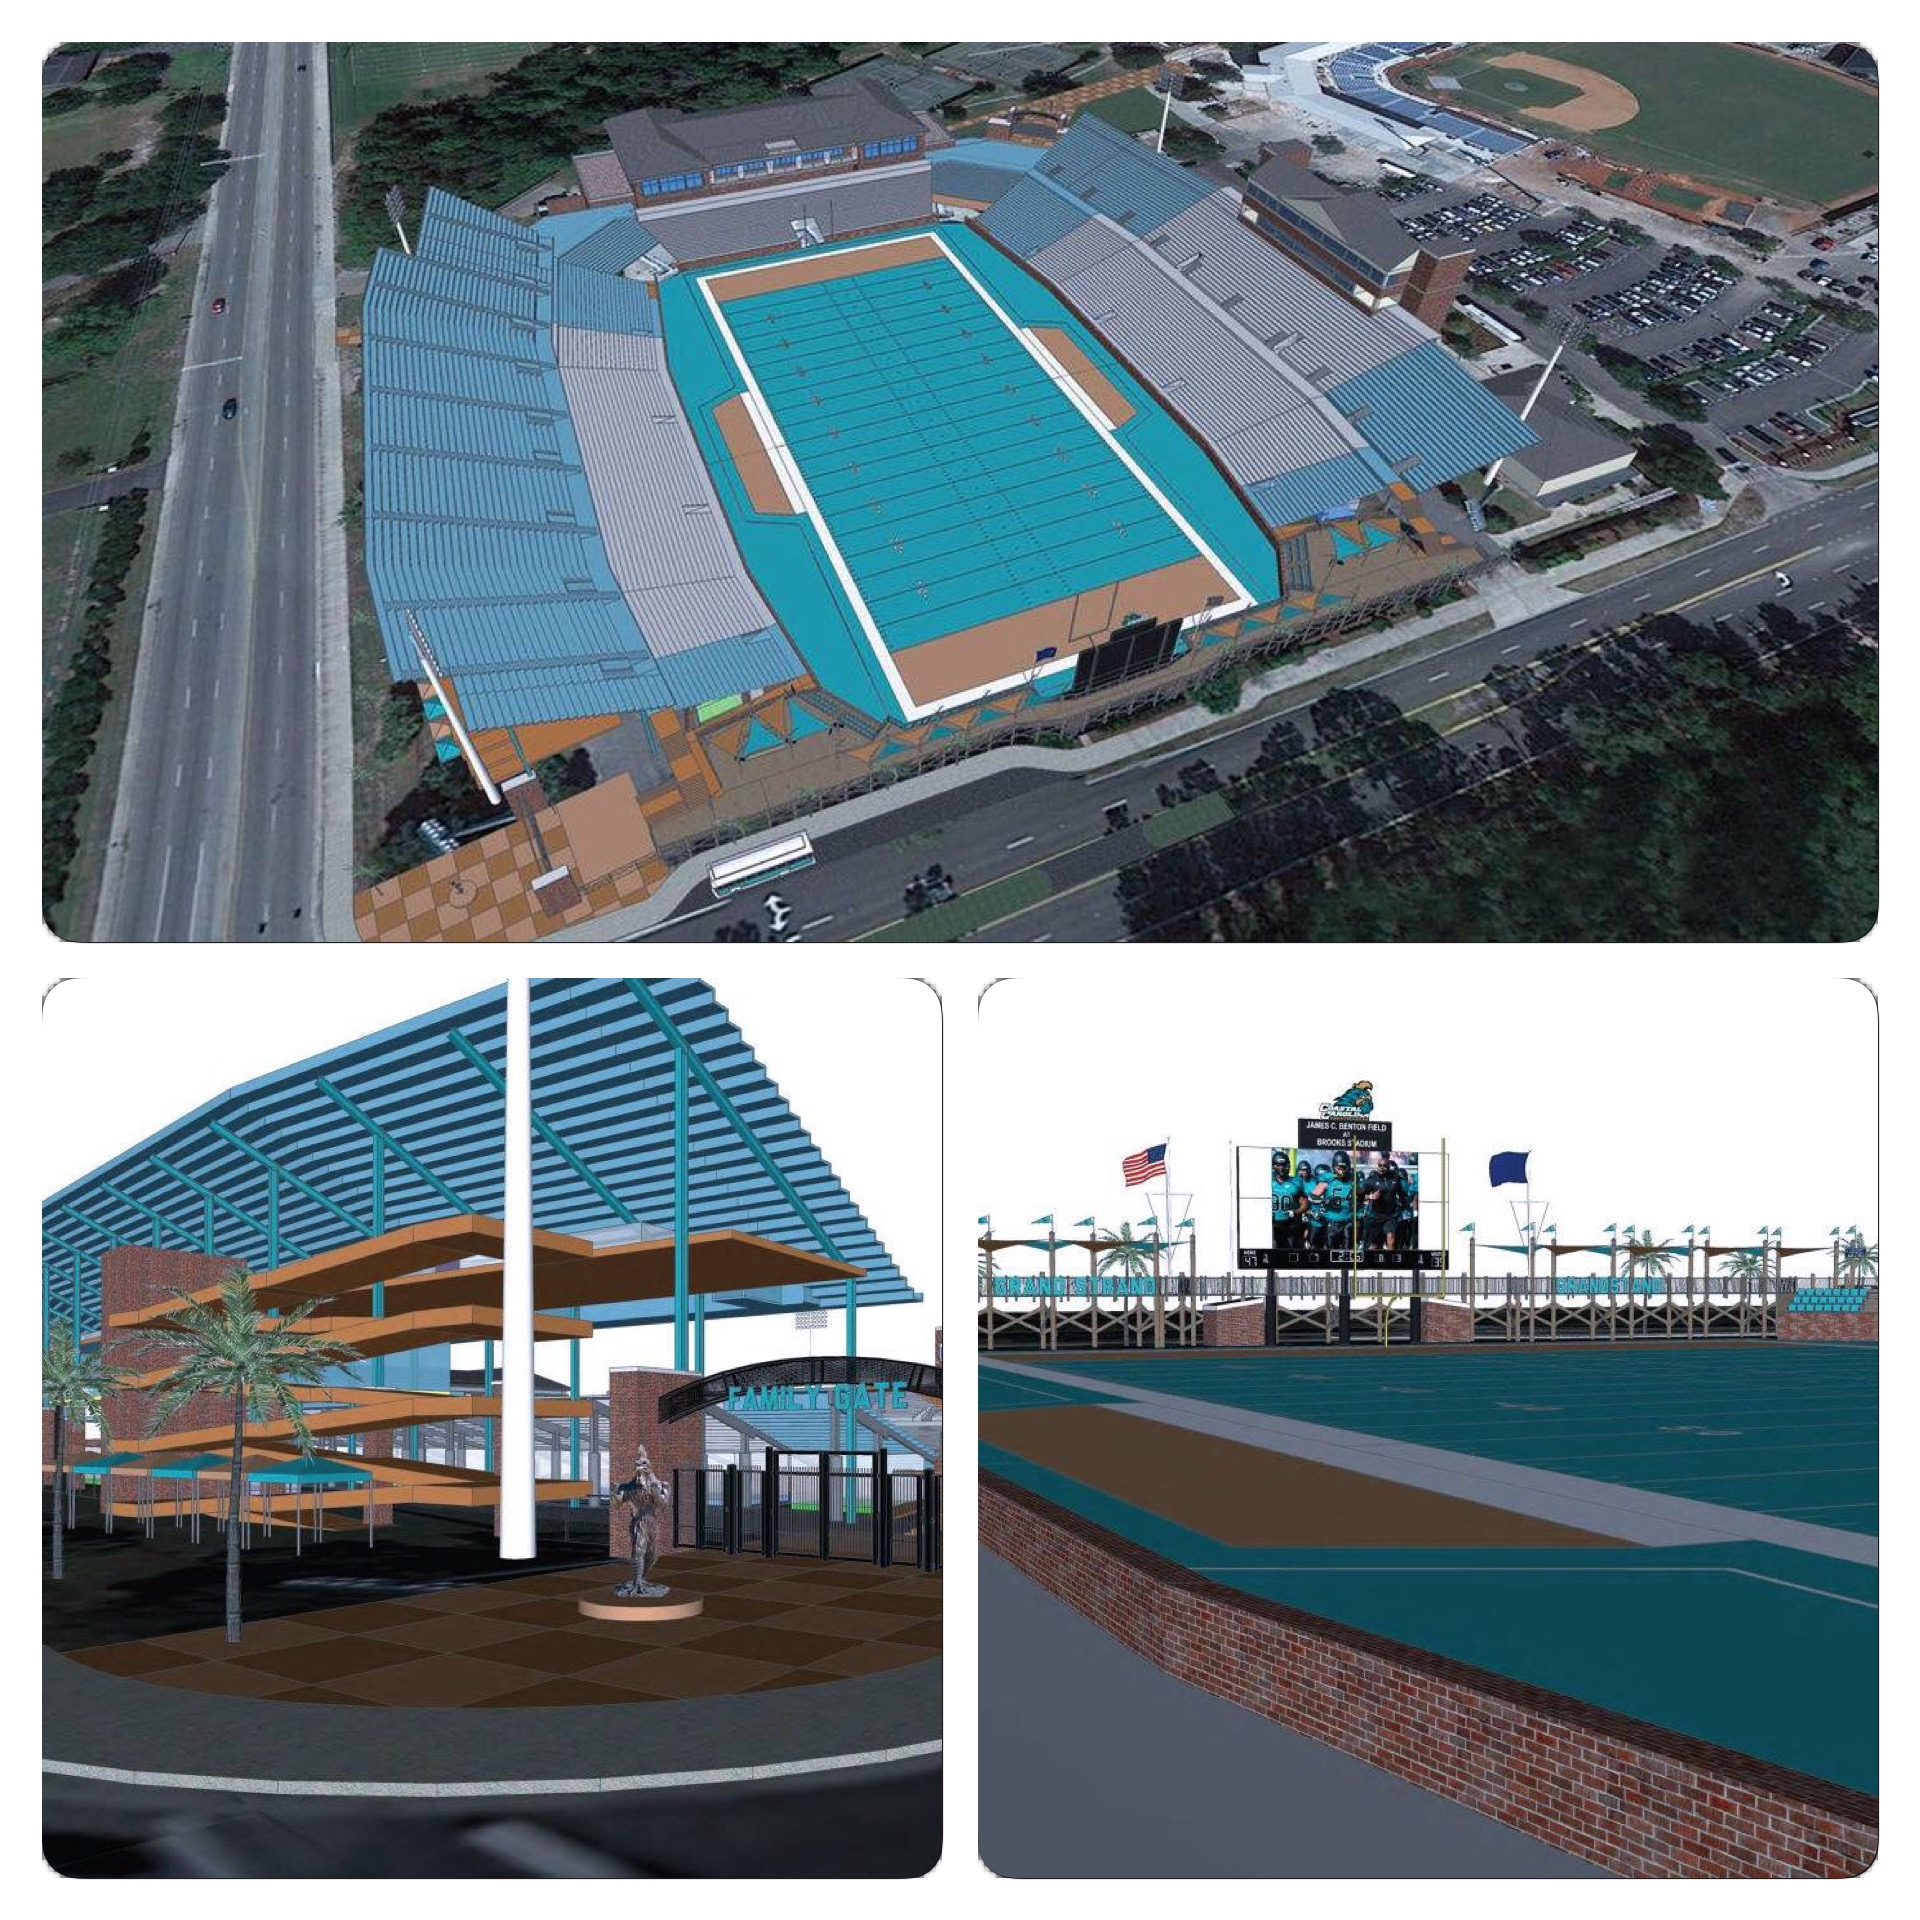 These are the renderings of the expansion to Brooks Stadium.